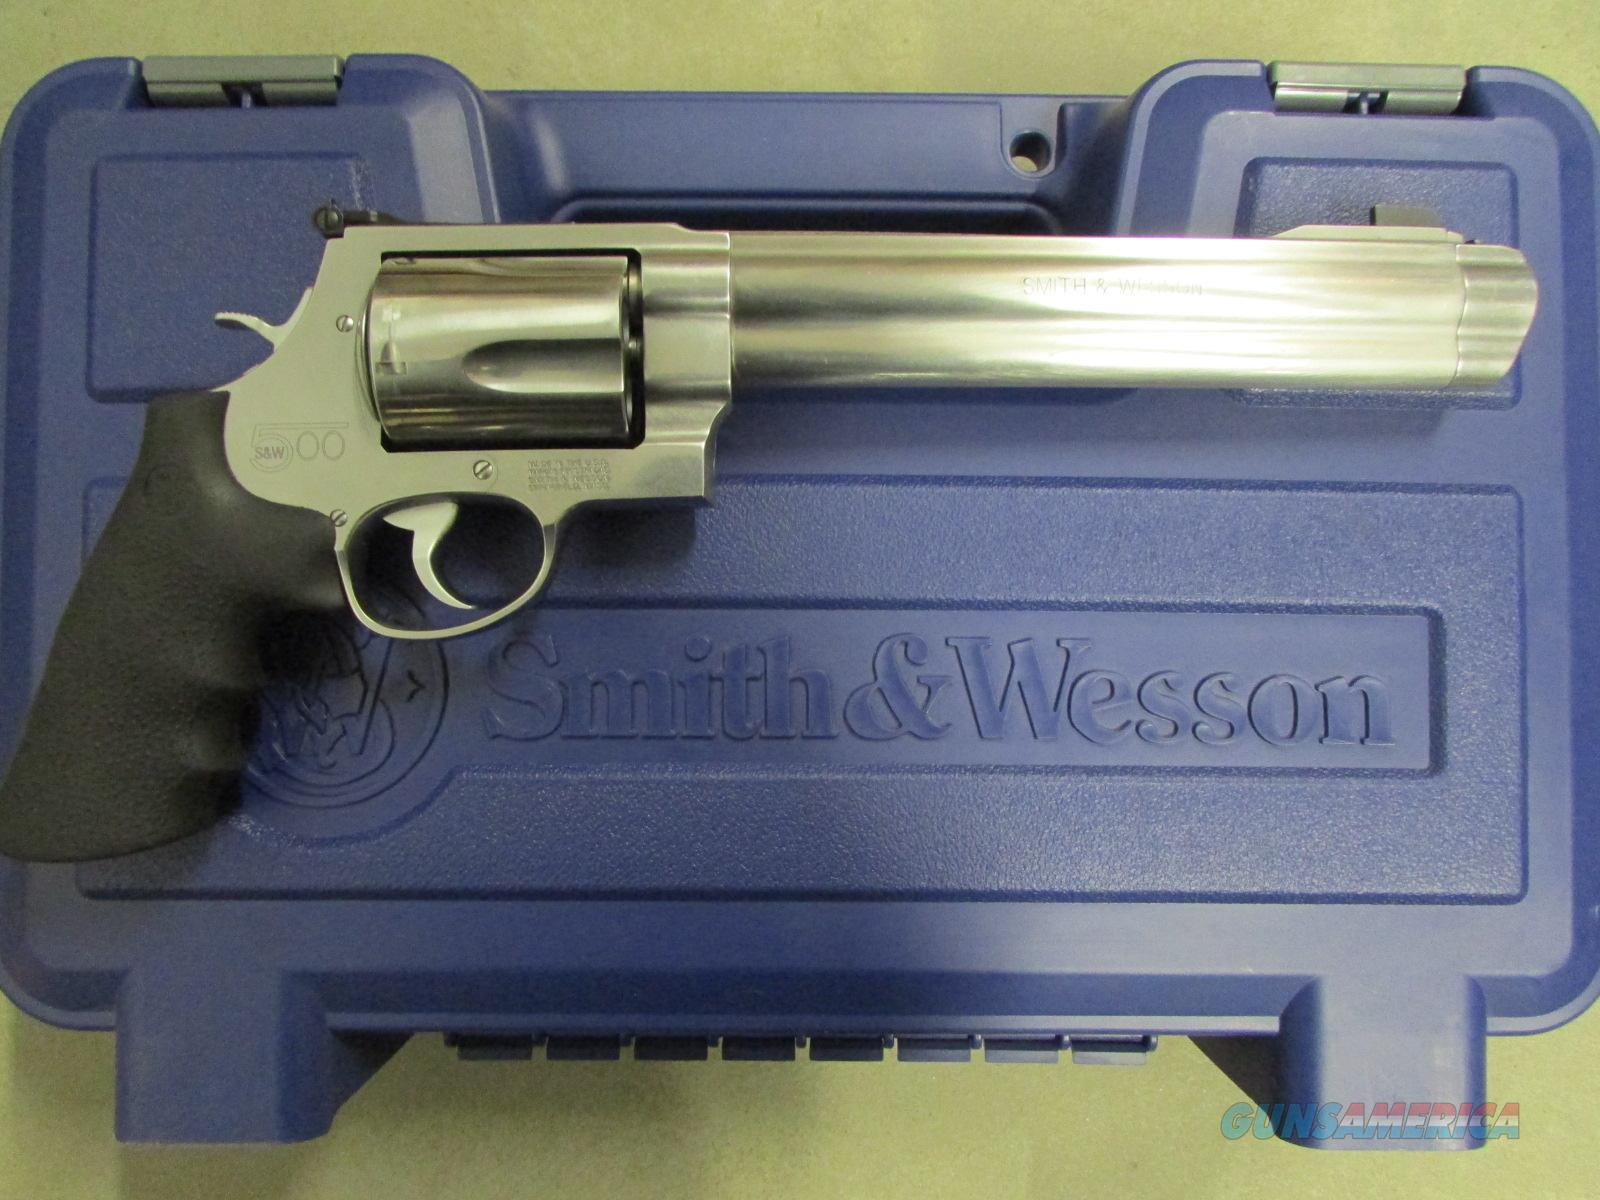 "Smith & Wesson Model 500 8.3"" Stainless .500 S&W Magnum  Guns > Pistols > Smith & Wesson Revolvers > Full Frame Revolver"